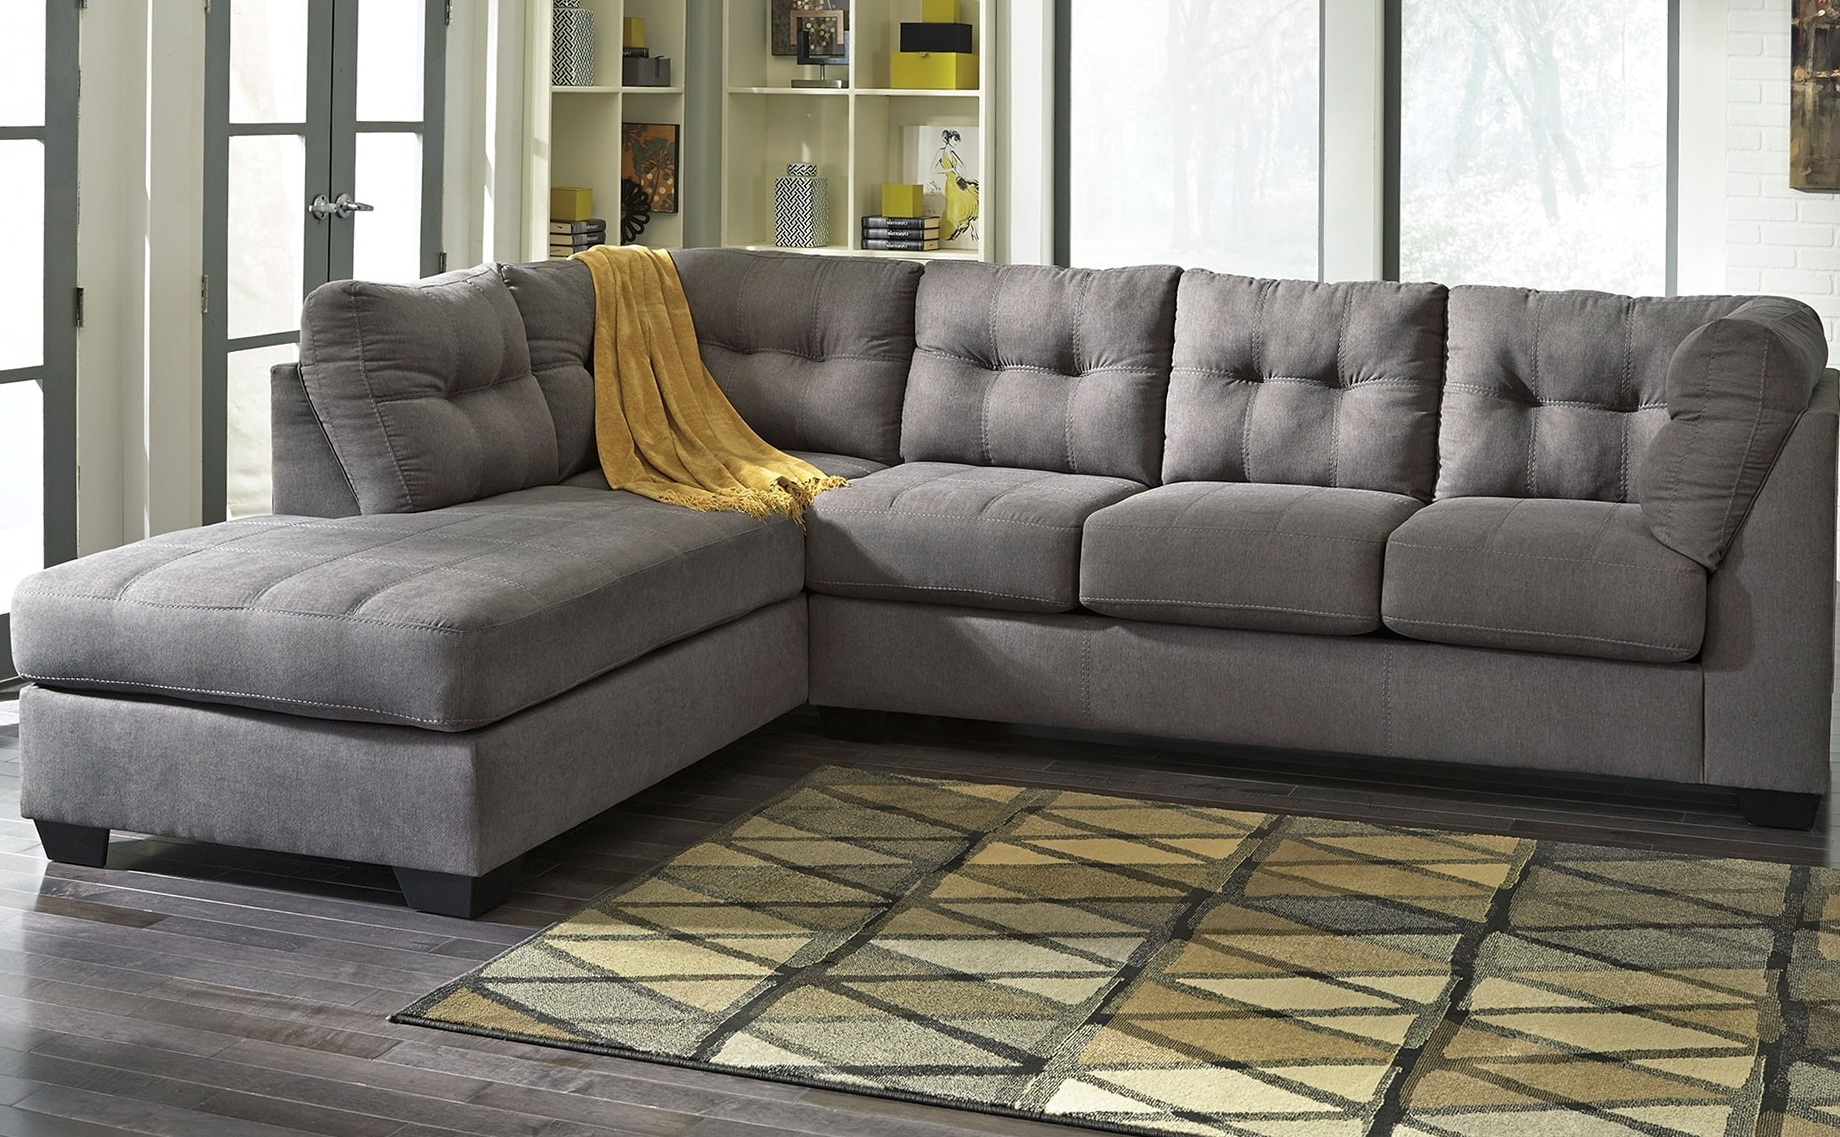 Sofa ~ Awesome Grey Sectional Sofa Perfect Grey Sectional Sofa Regarding Favorite Grey Sofas With Chaise (View 14 of 15)